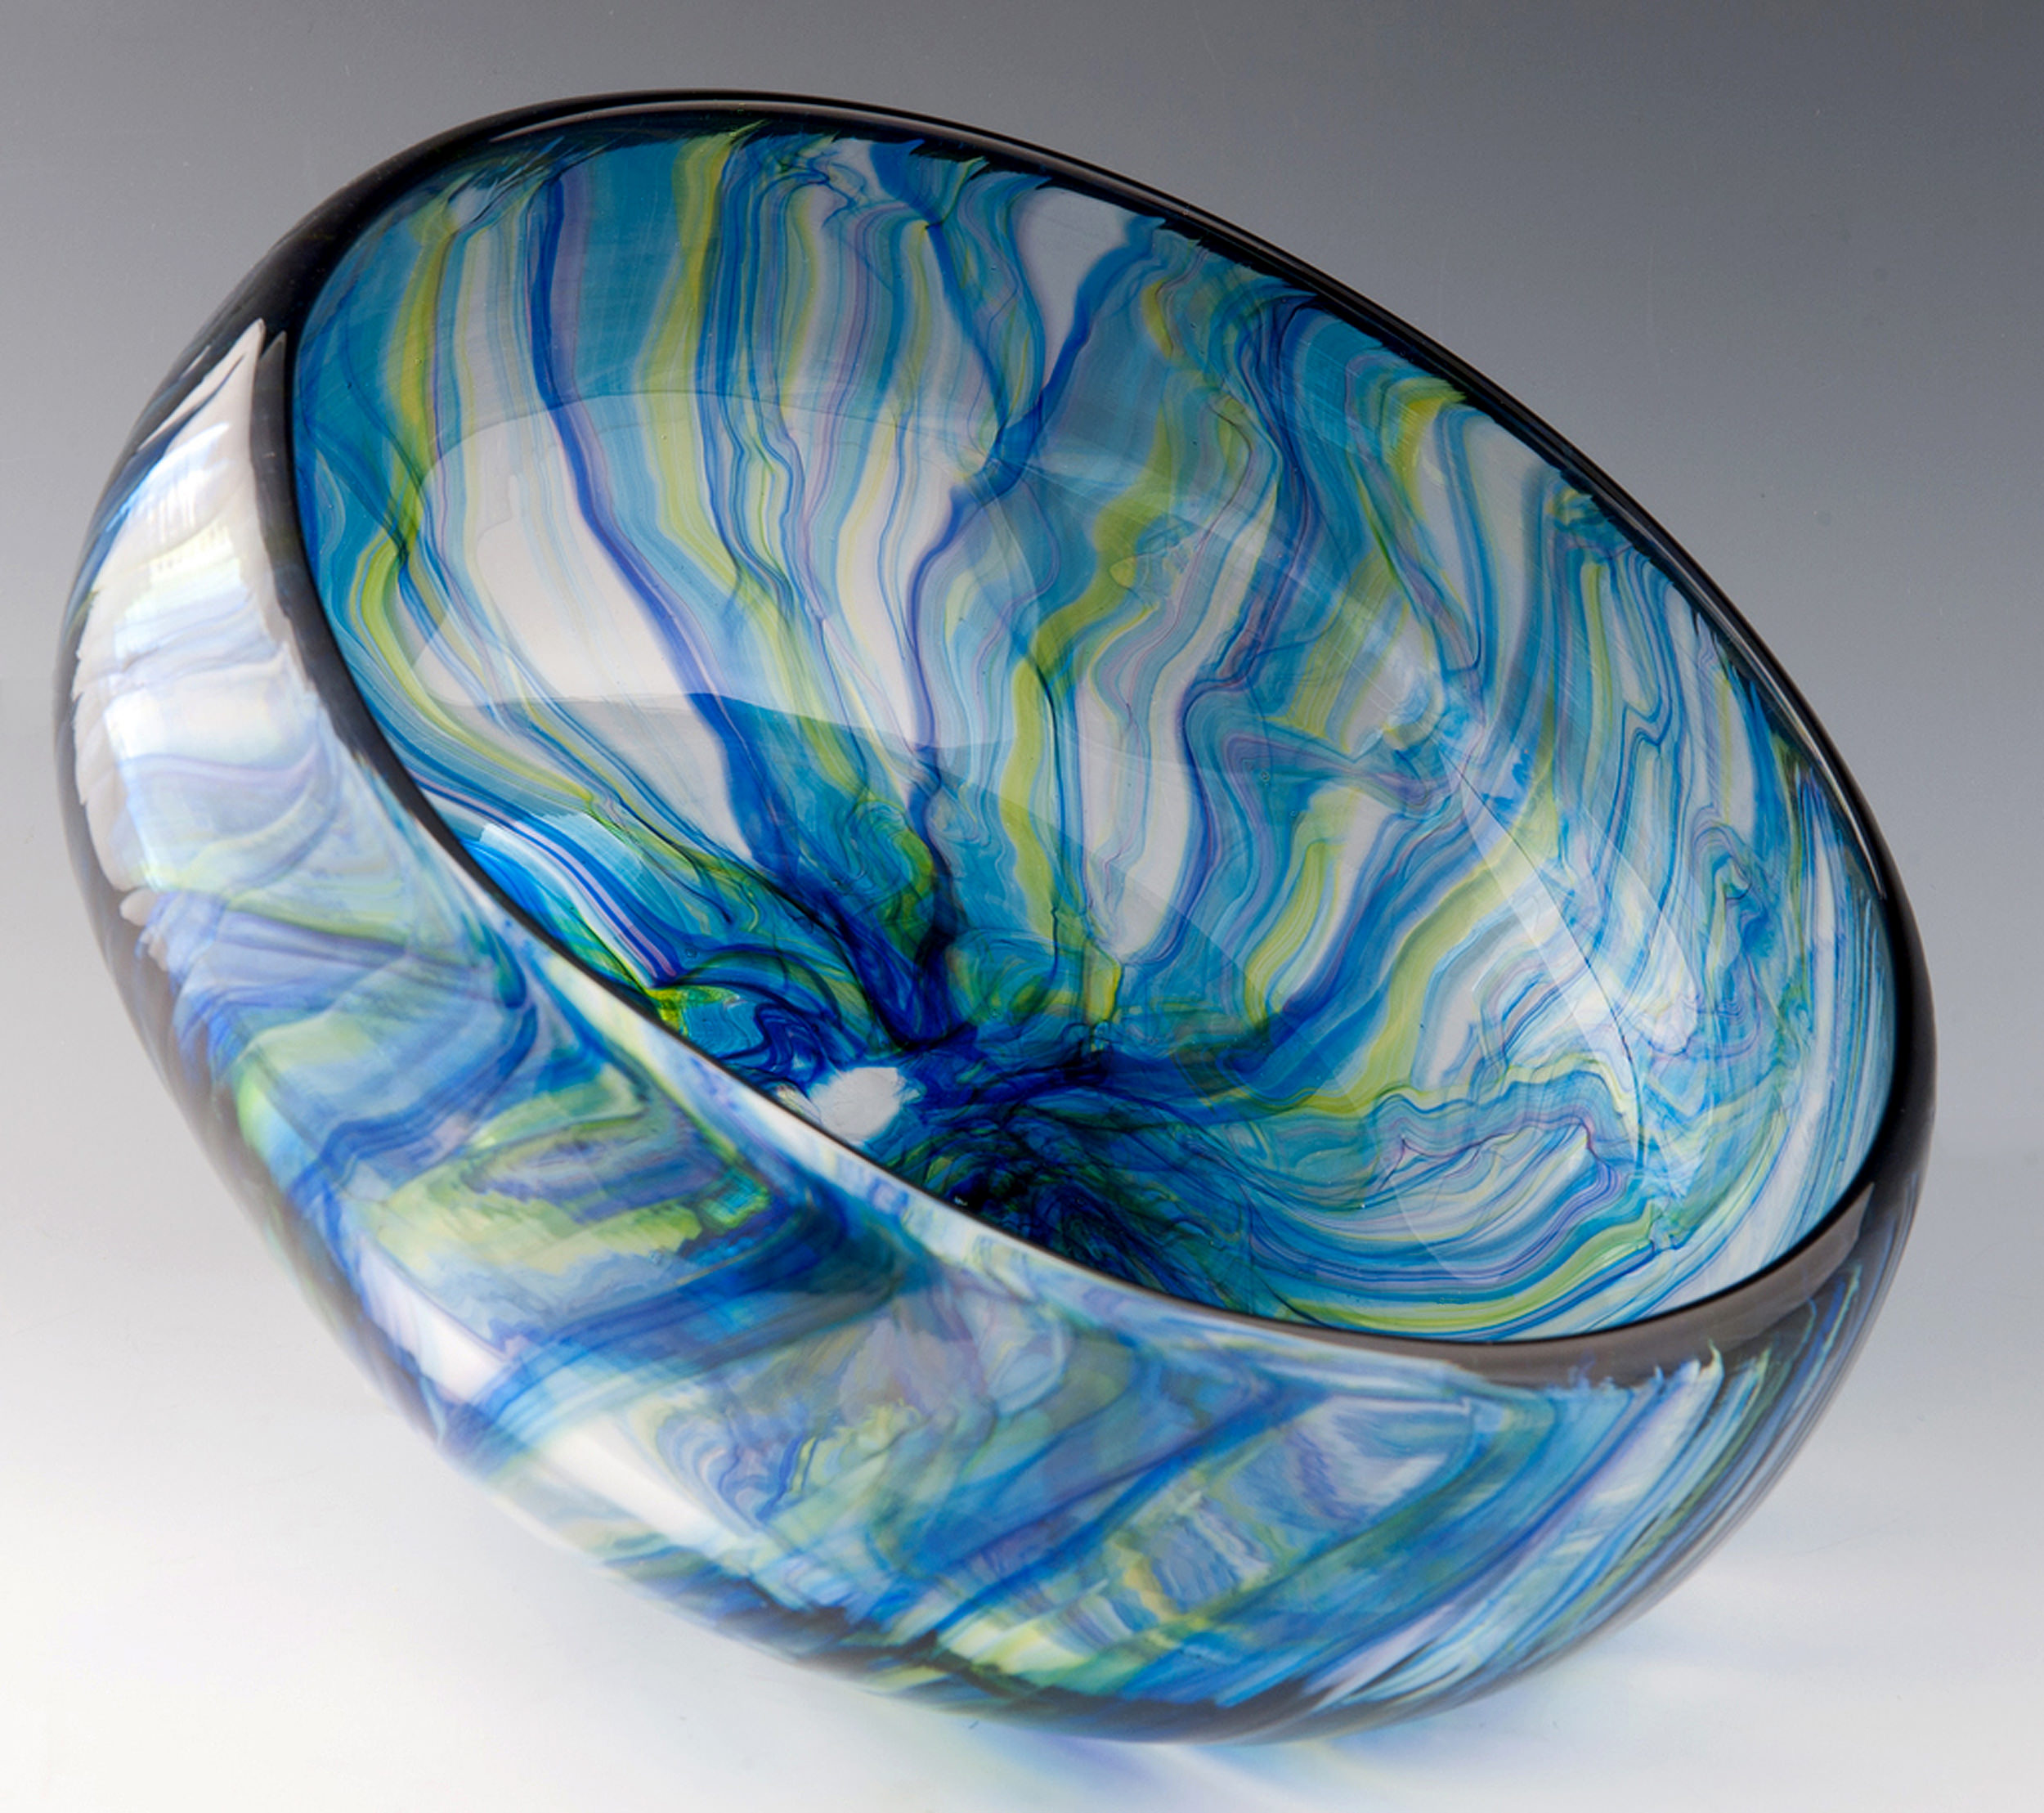 River Bowl, seen here in Blue Ribbons.